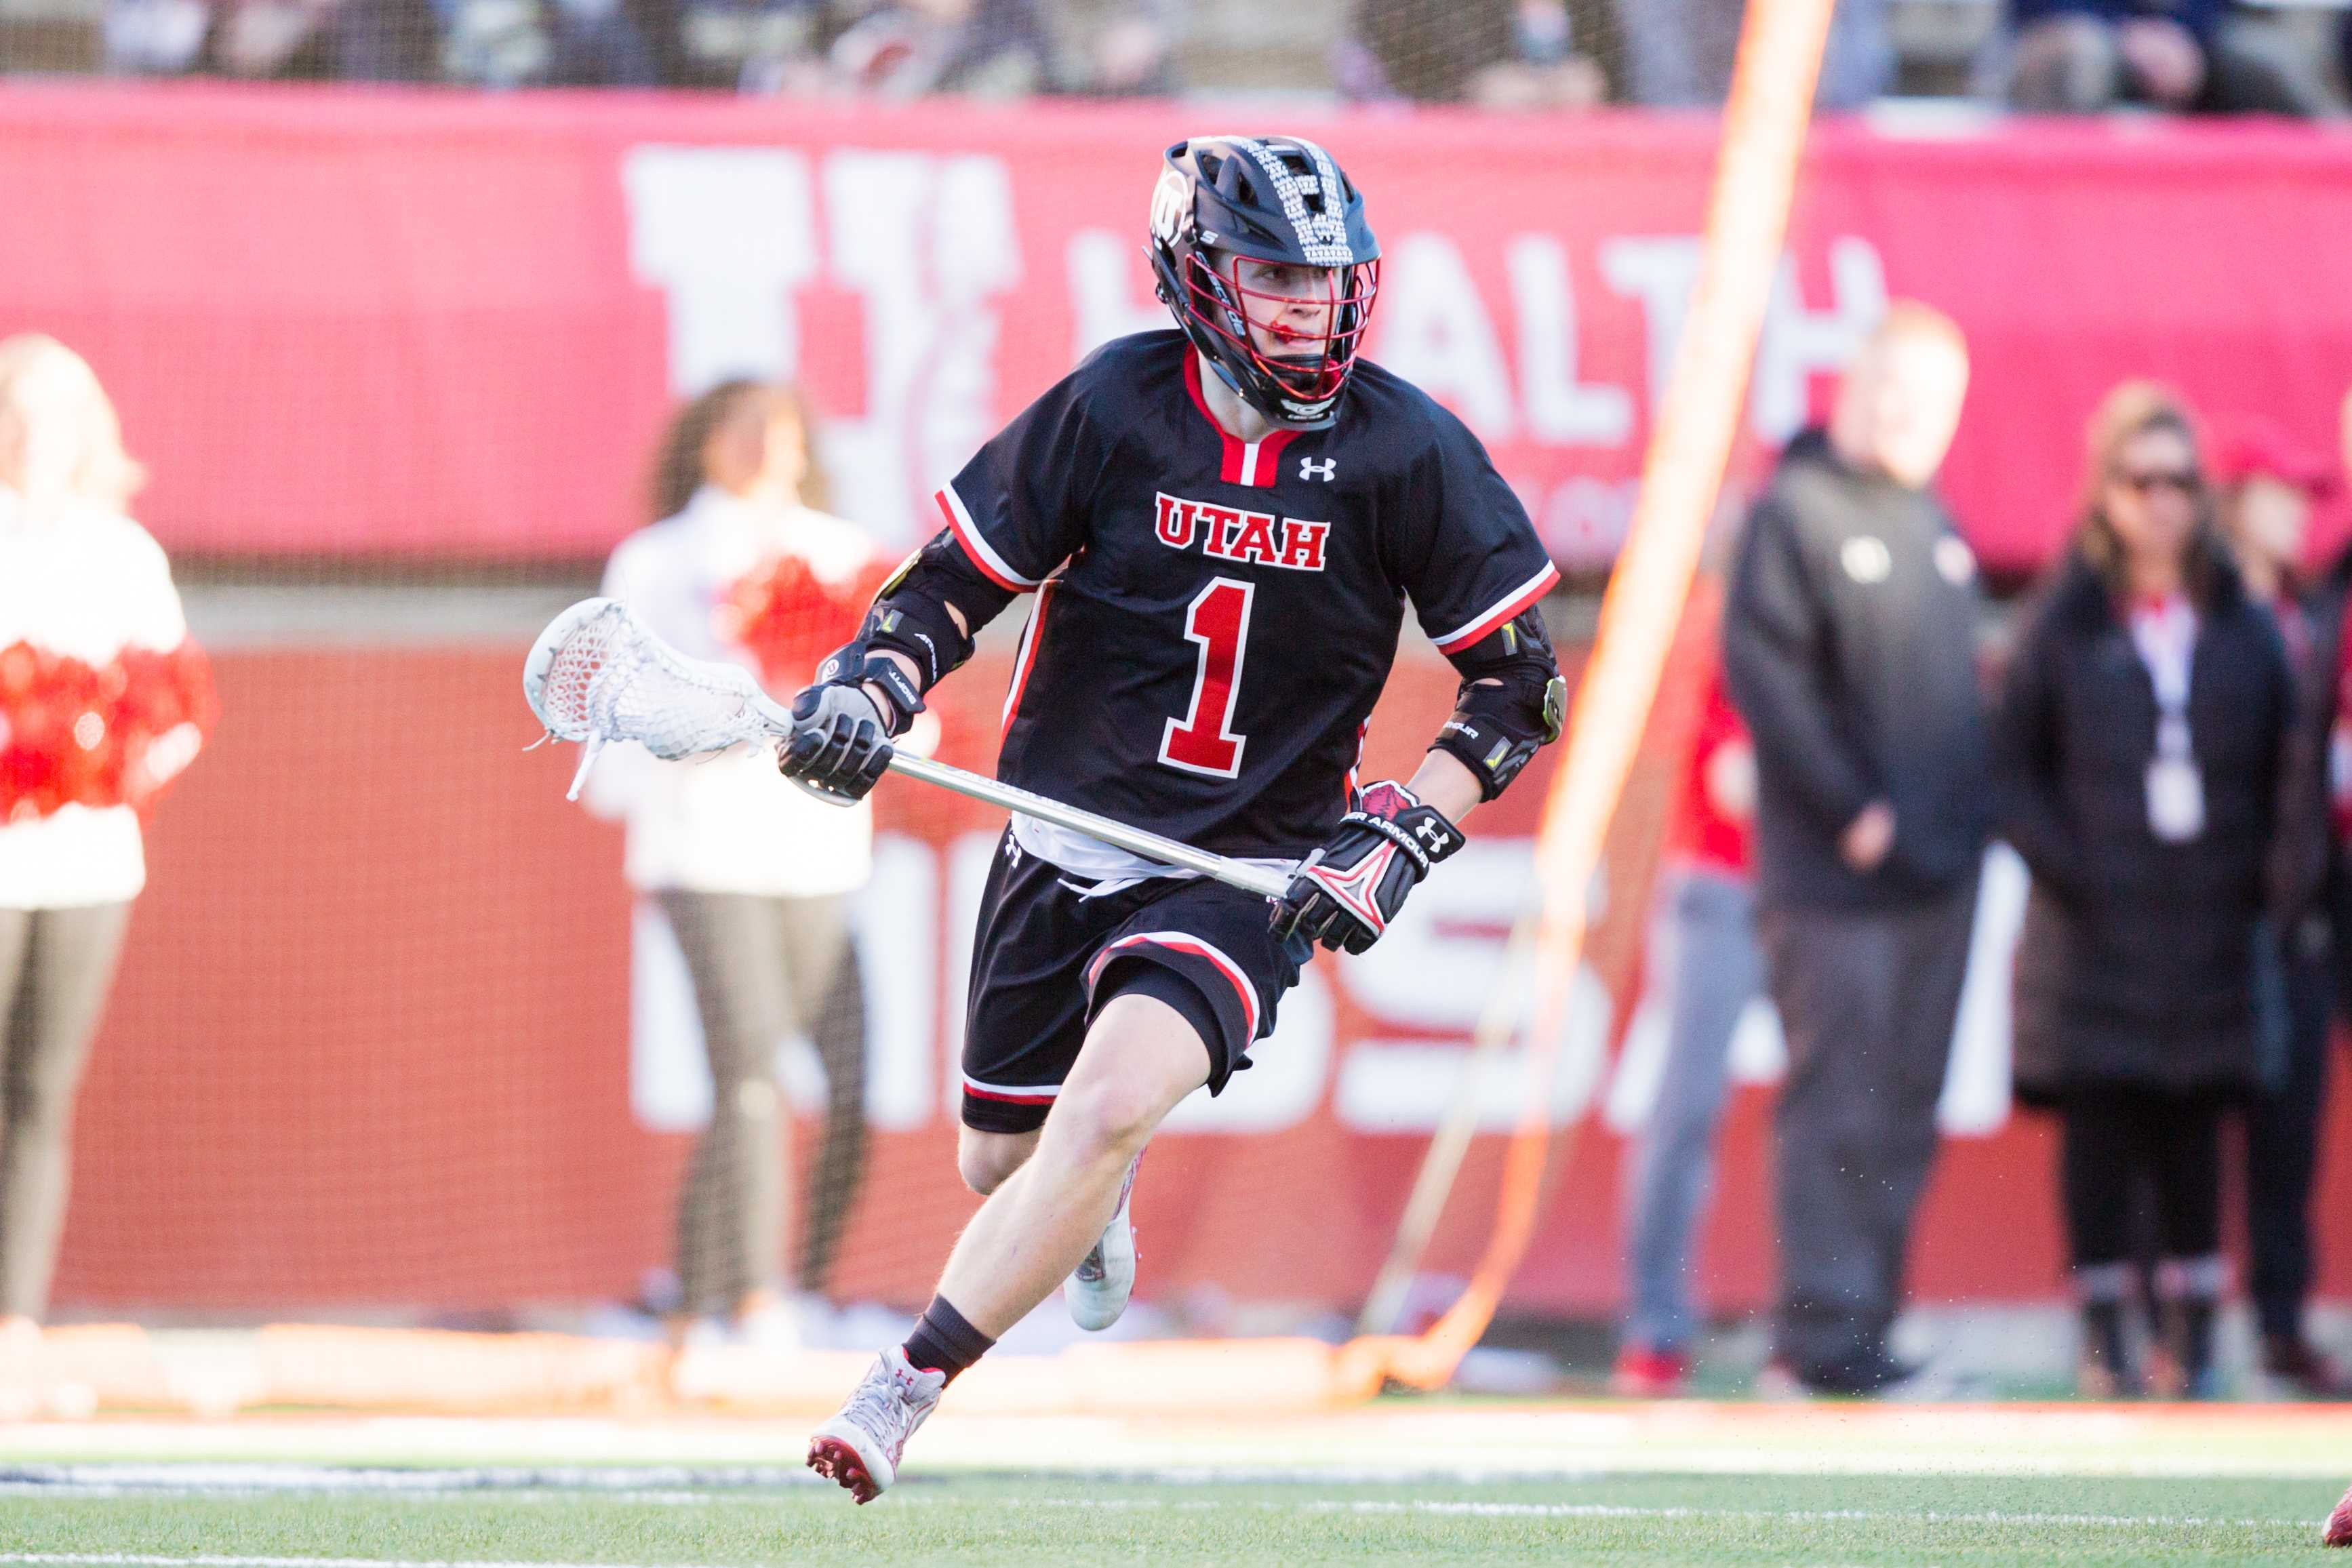 University of Utah sophomore attacker Josh Stout (1) looked to pass the ball off in an NCAA Men's Lacrosse game vs. Vermont at Rice-Eccles Stadium in Salt Lake City, UT on Friday February 01, 2019.  (Photo by Curtis Lin | Daily Utah Chronicle)